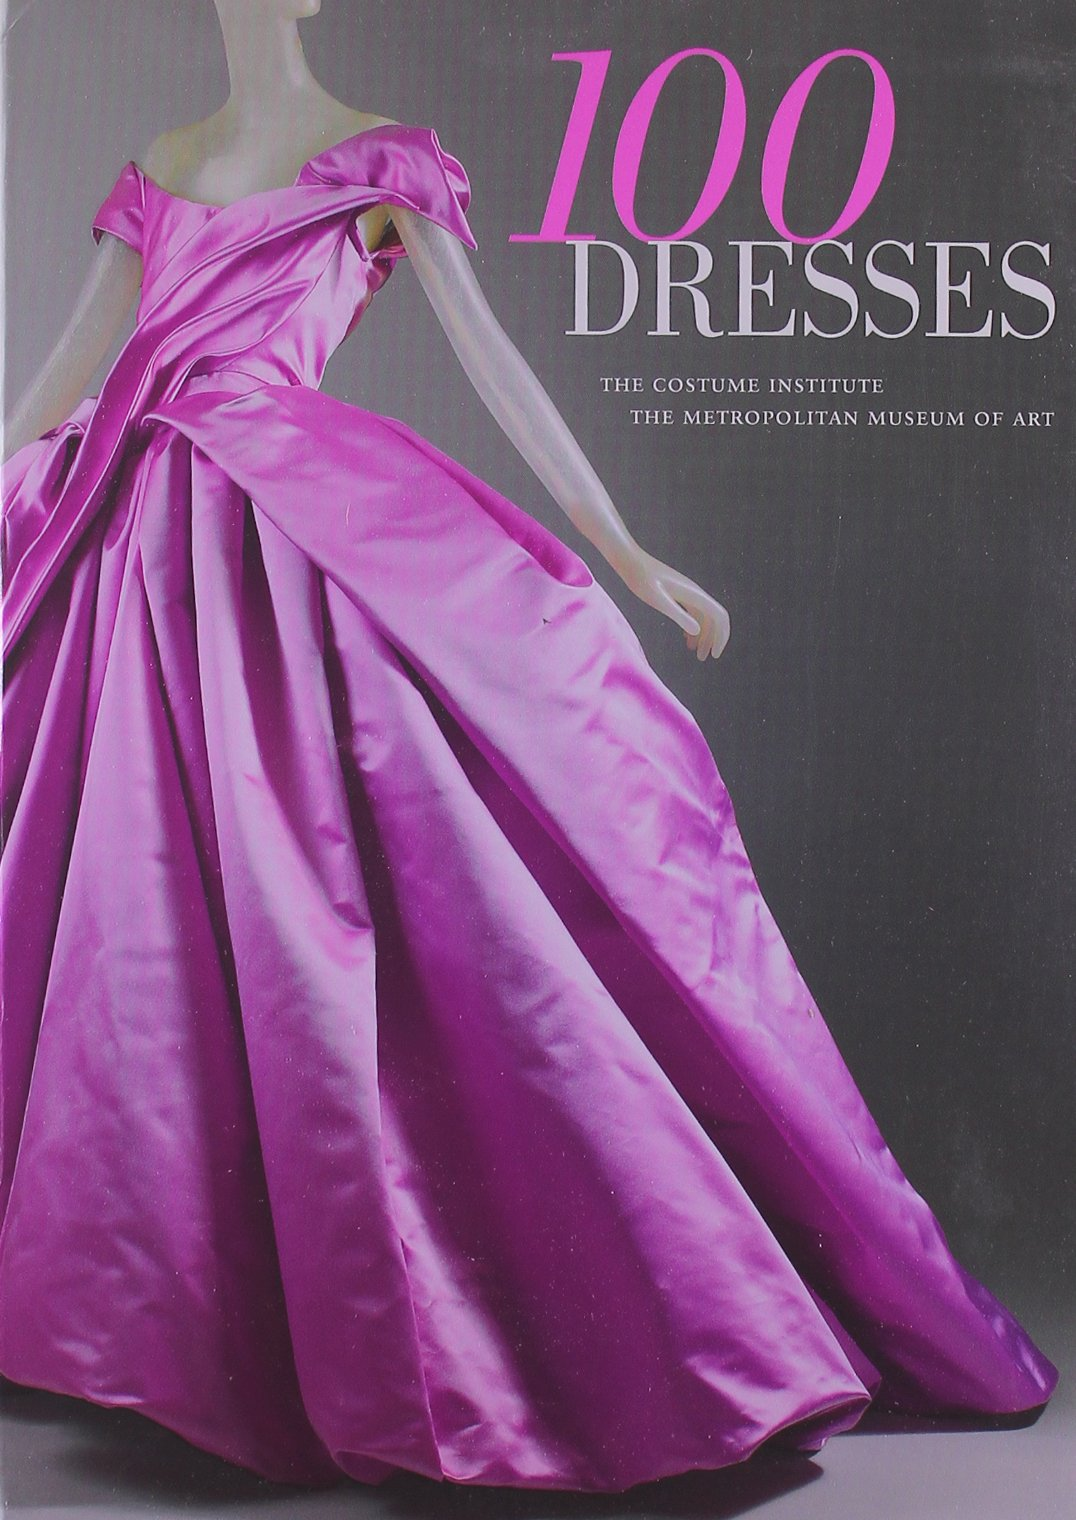 100 Dresses: The Costume Institute / The Metropolitan Museum of Art: Harold  Koda: 9780300166552: Amazon.com: Books